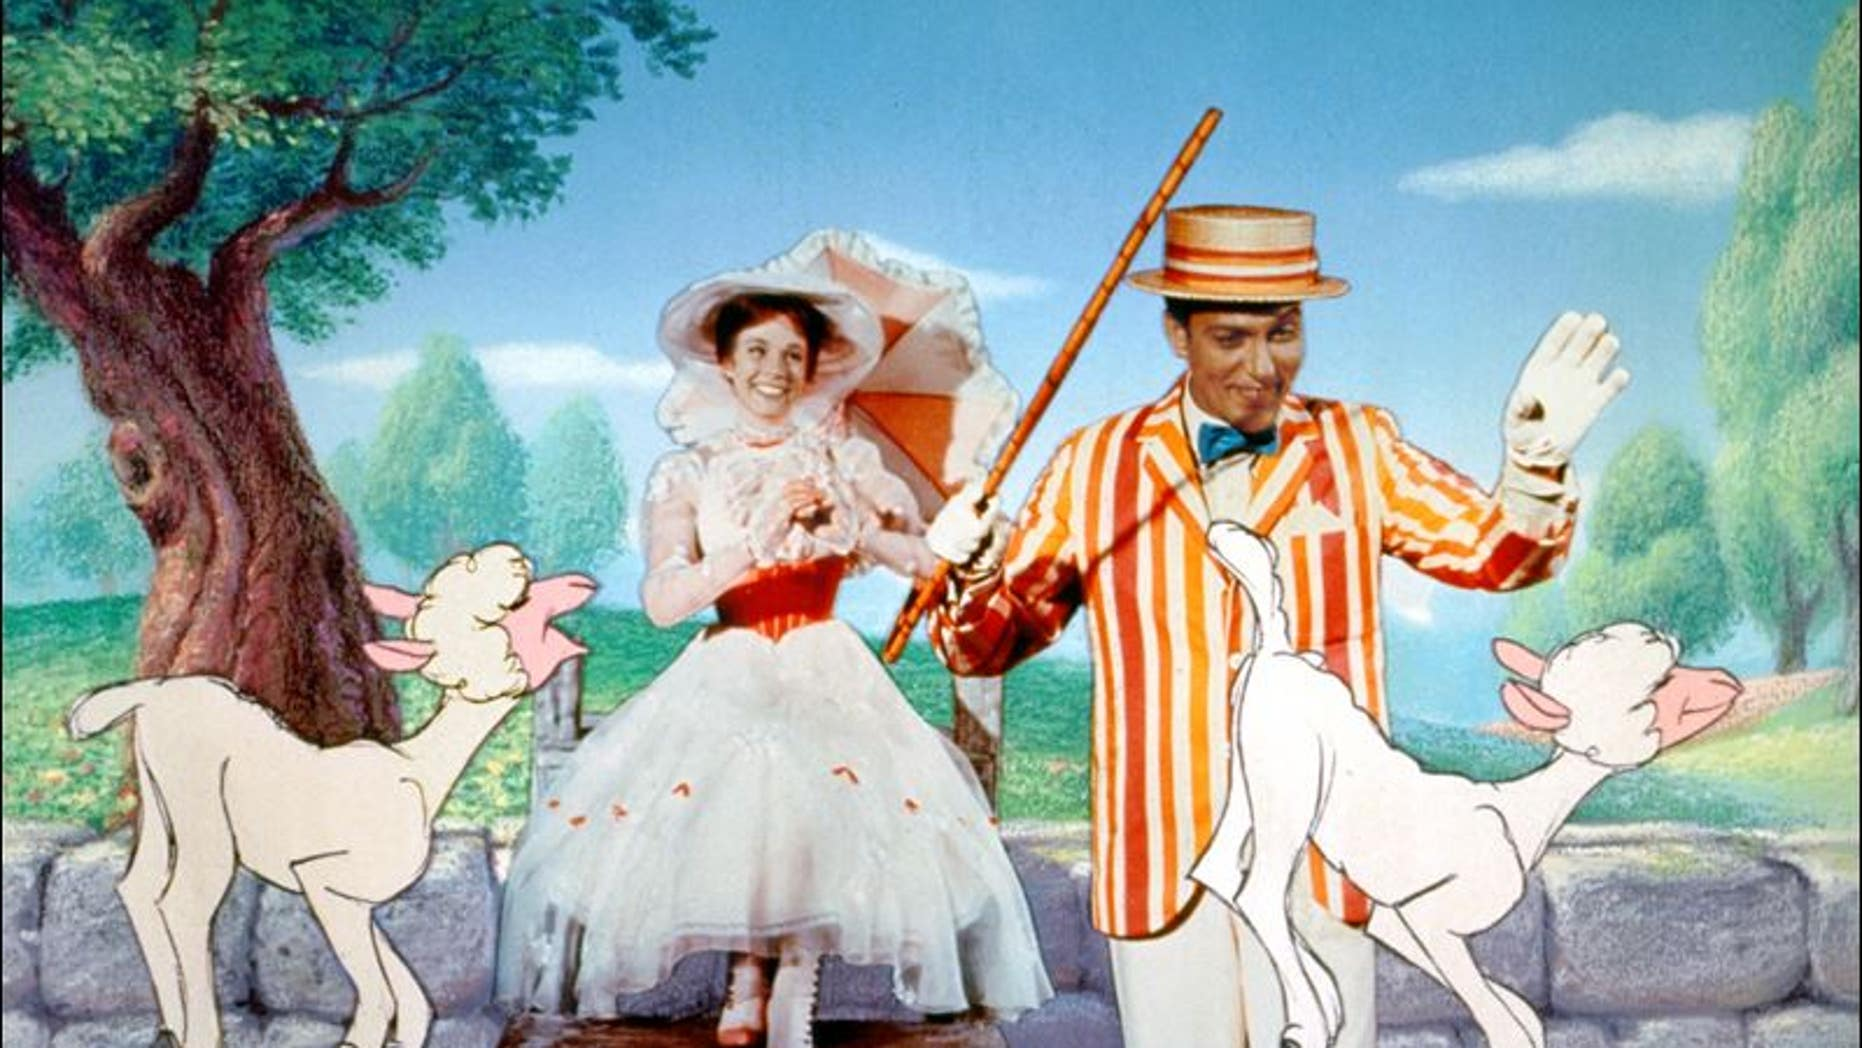 Julie Andrews as Mary Poppins and Dick Van Dyke as Bert in a scene from Disney's 'Mary Poppins.' The film has been selected for preservation at the Library of Congress